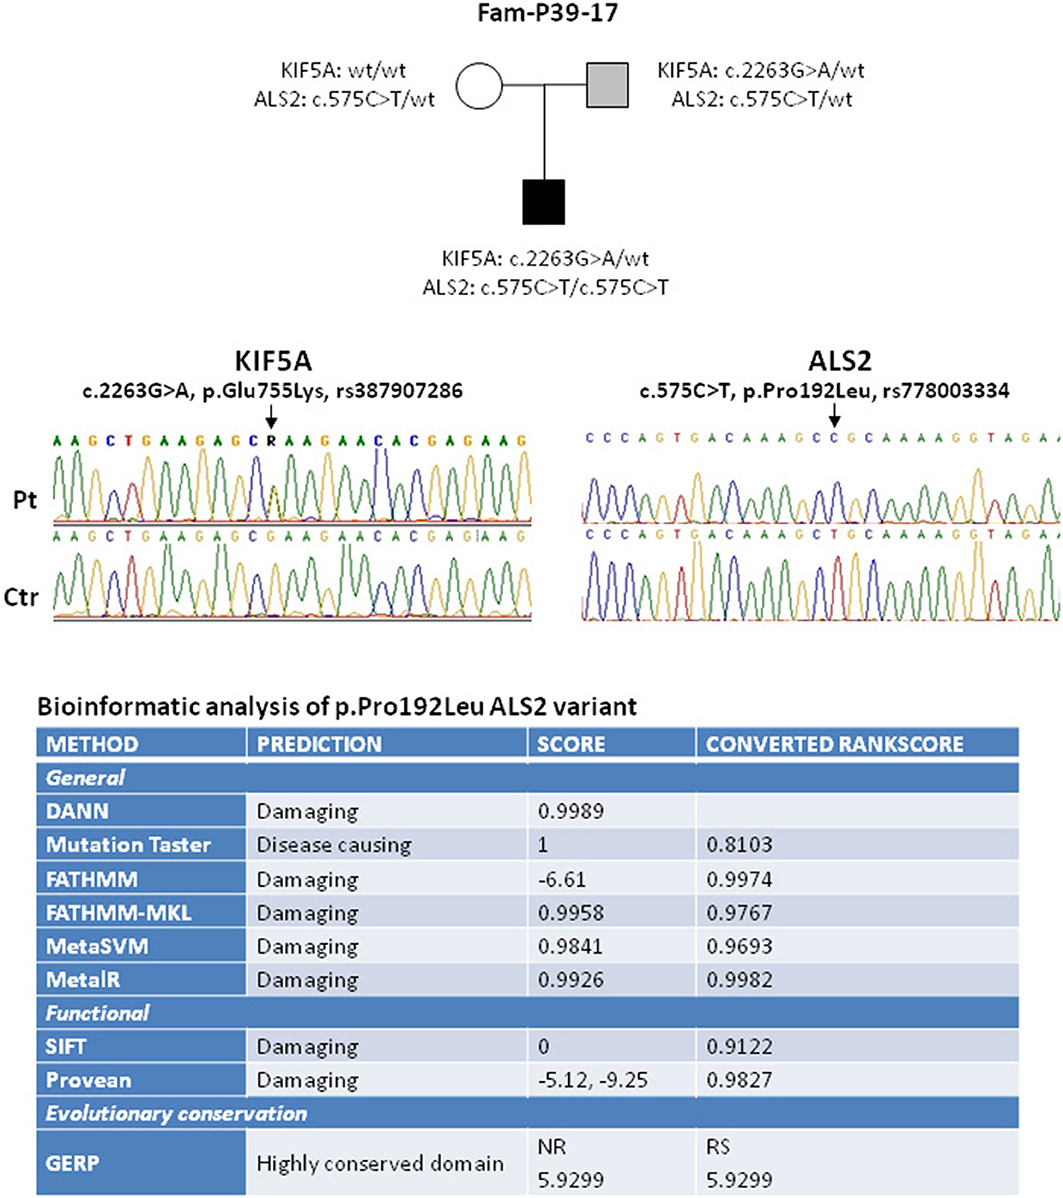 Frontiers | KIF5A and ALS2 Variants in a Family With